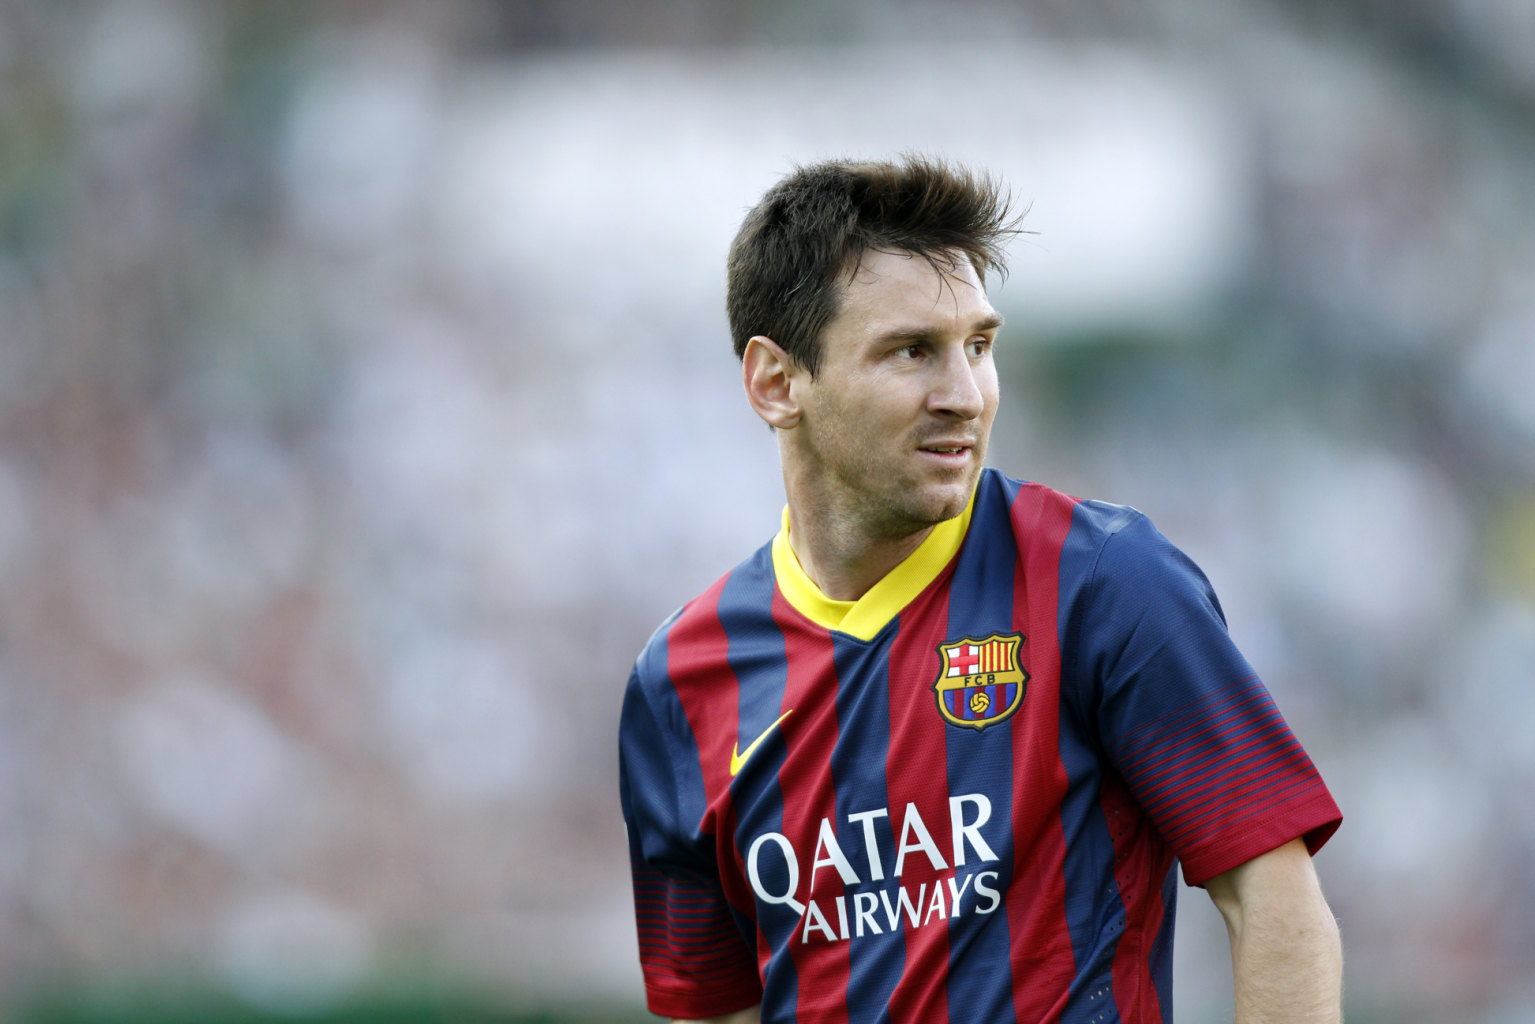 Lionel Messi in FC Barcelona 2014